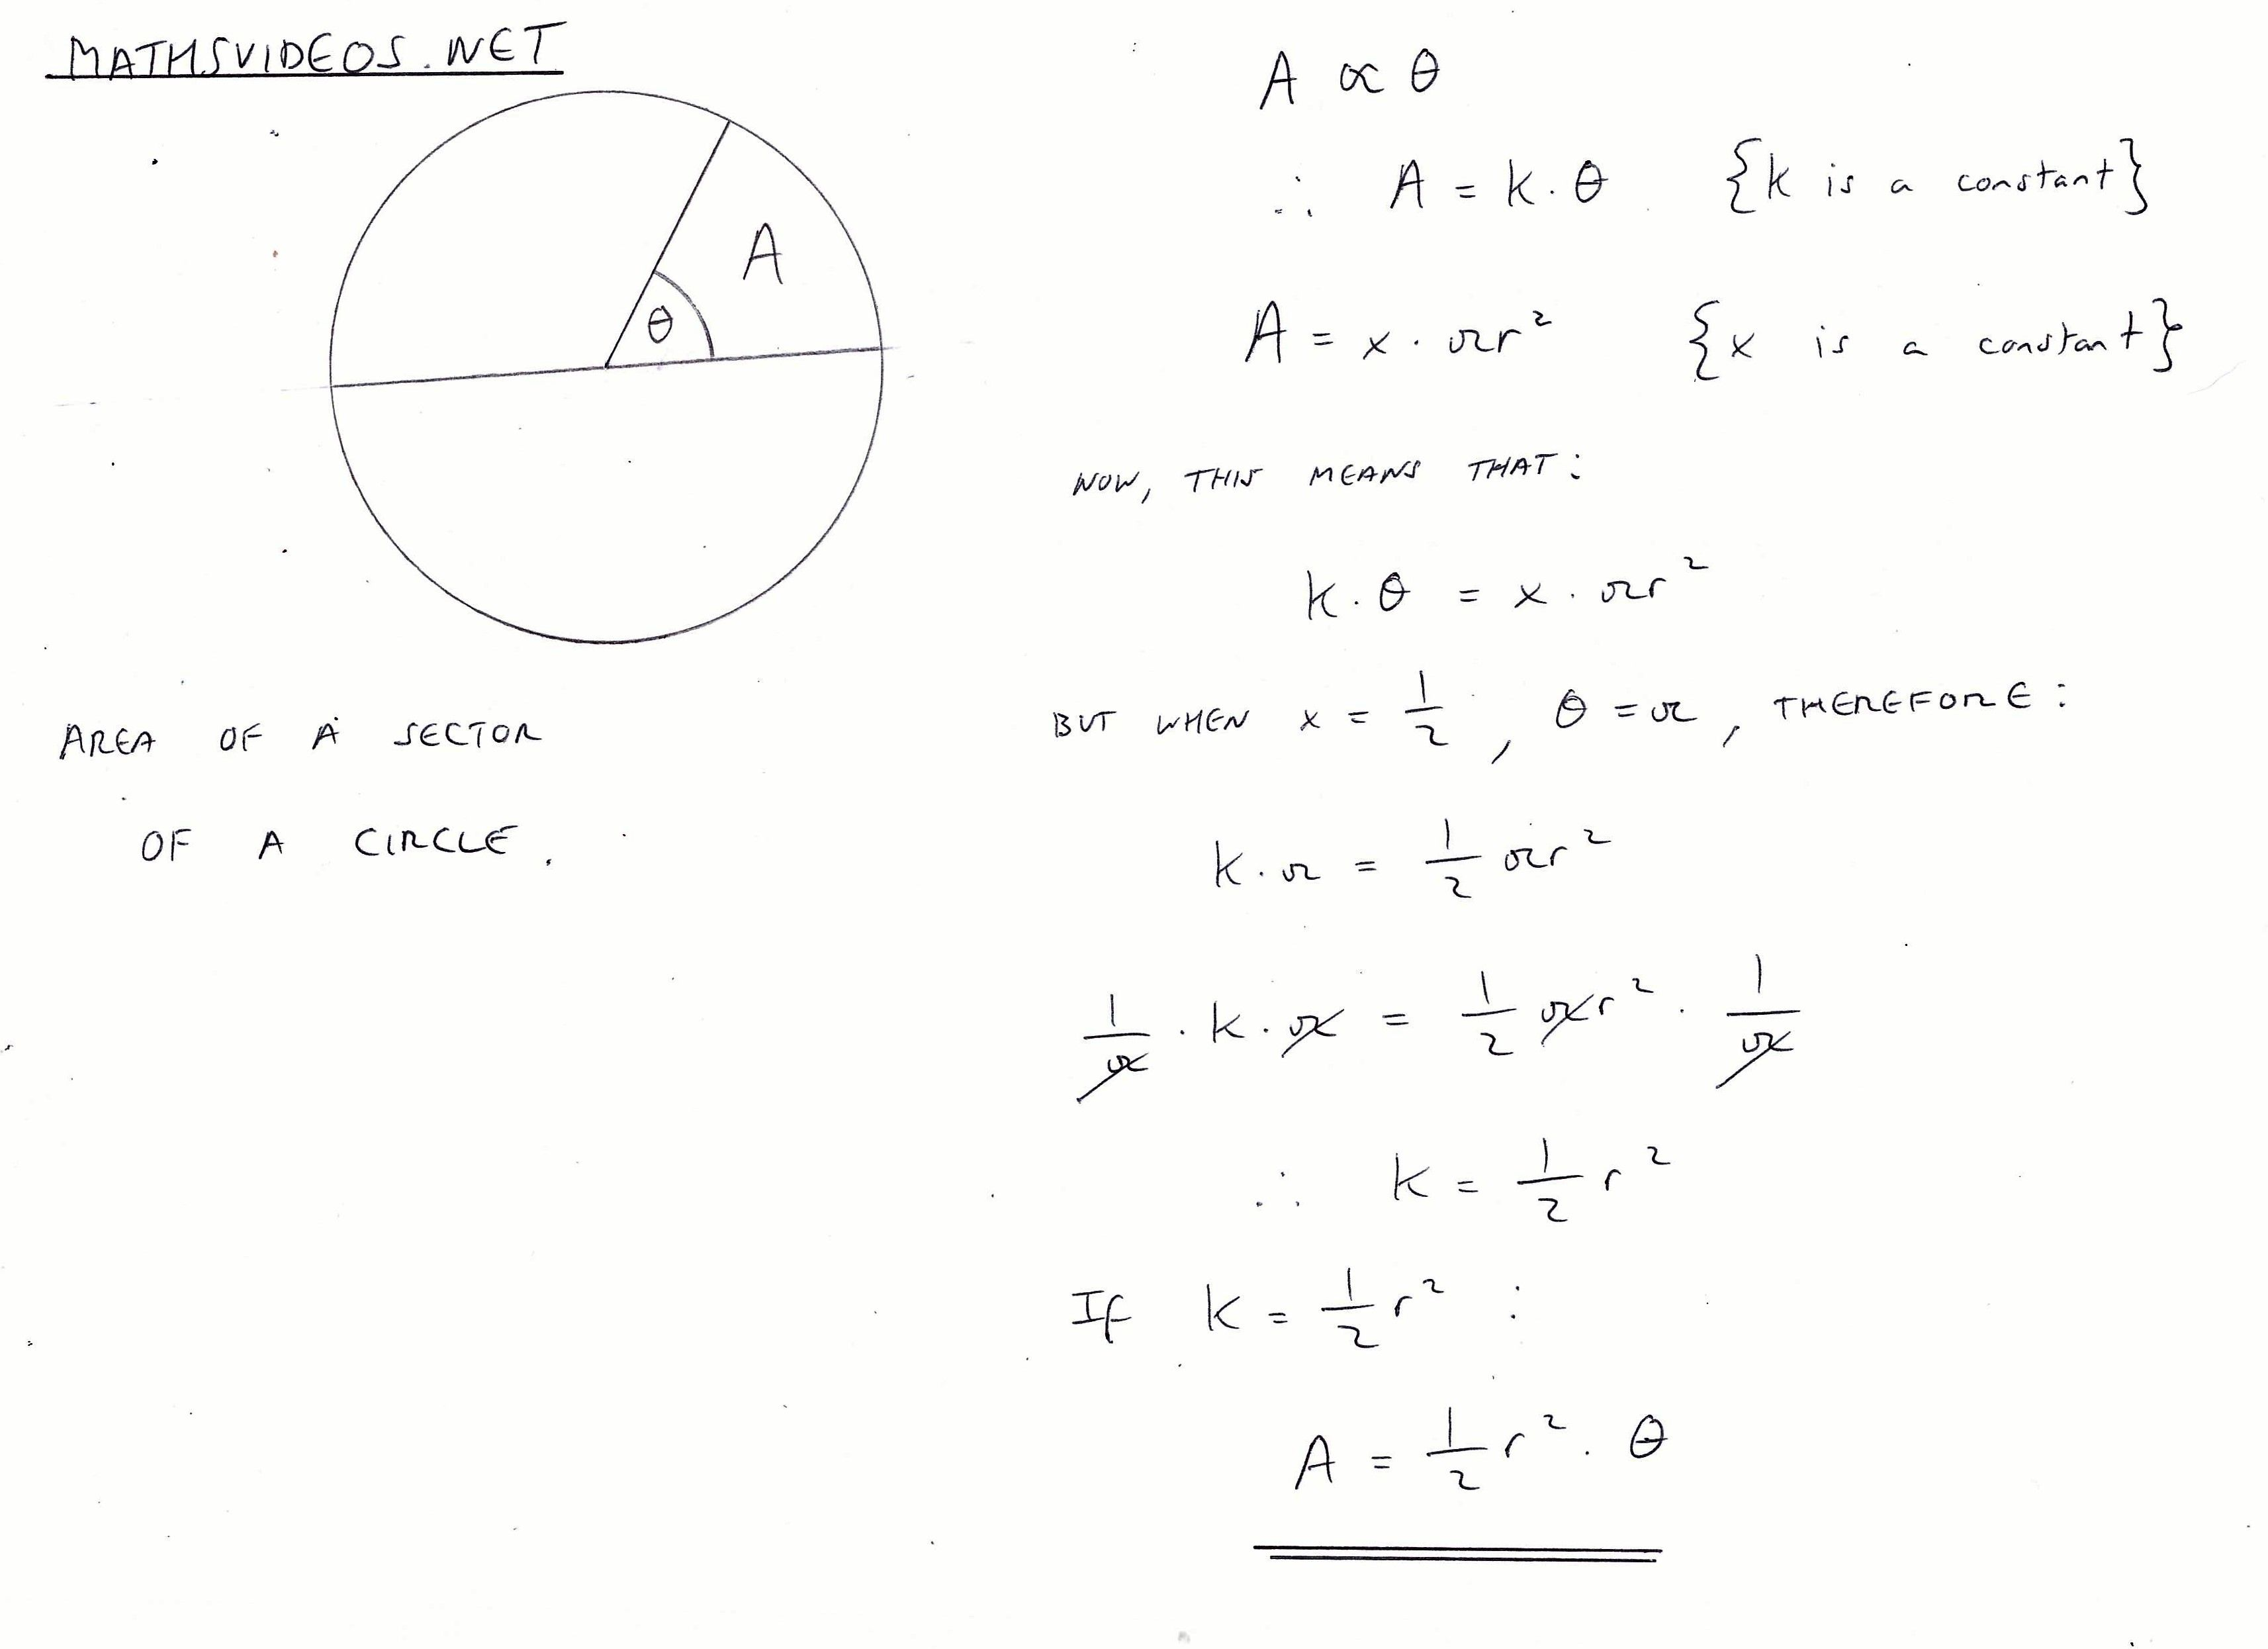 Area of a sector of a circle proof. #sectors #mathematics